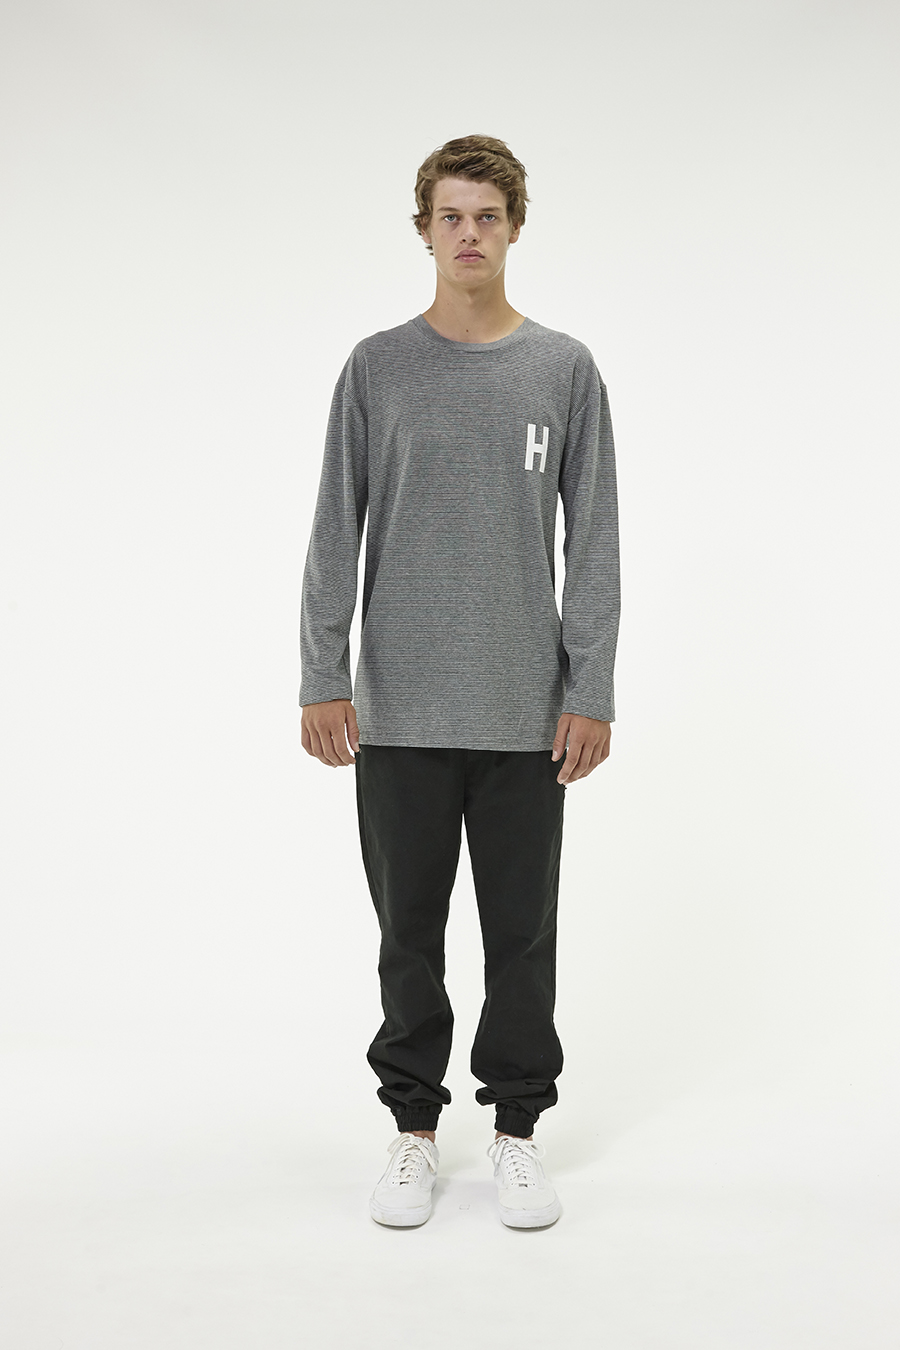 Huffer_Q3-16_M-Weekend-LS-Tee_Grey-01